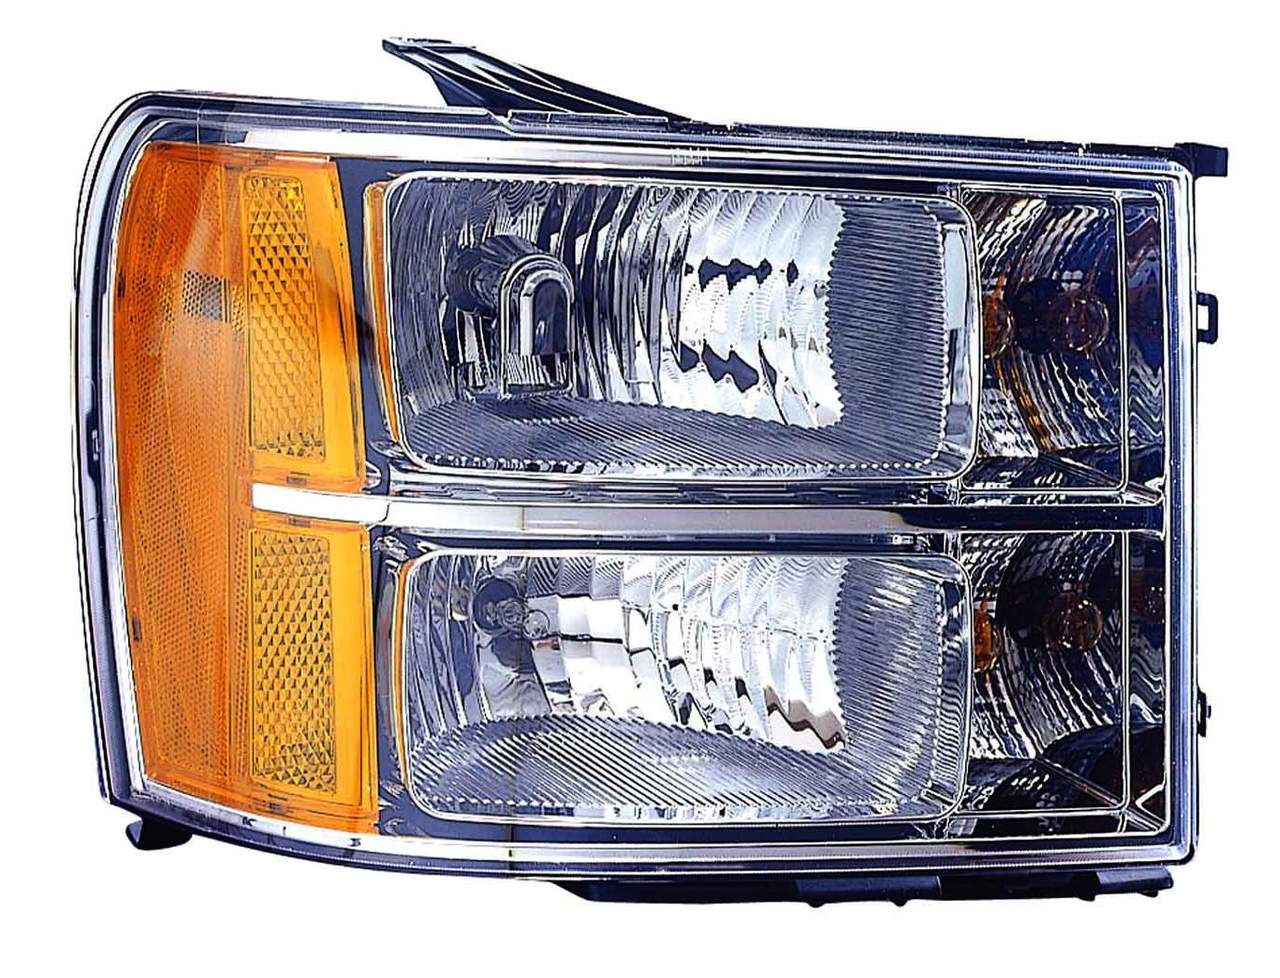 GMC Sierra 1500/2500/3500 2011 2012 2013 right passenger headlight